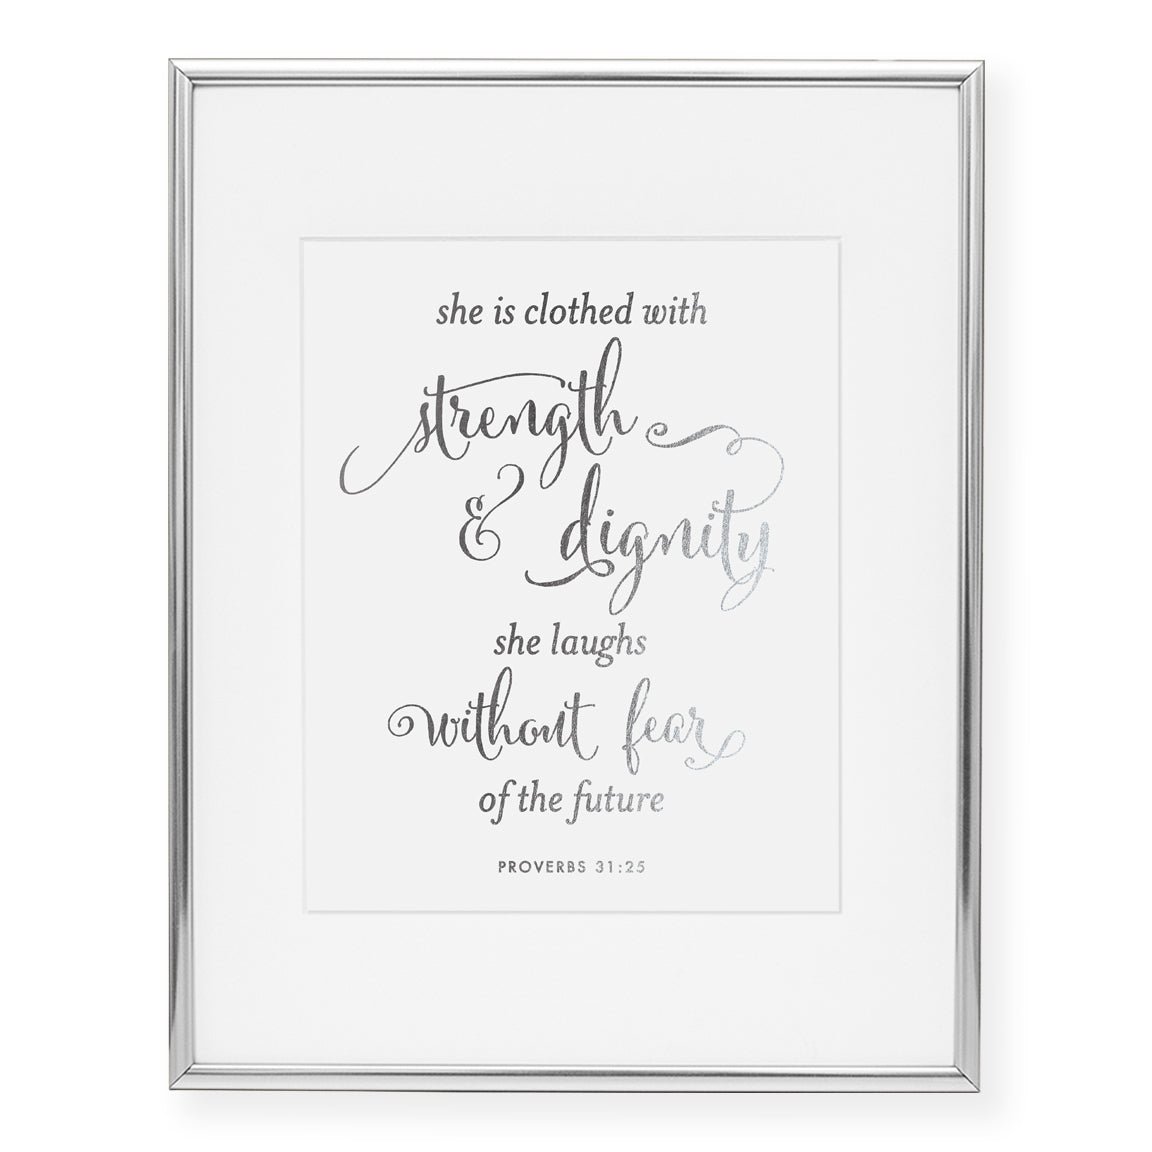 Strength & Dignity Proverbs 31:25 Foil Art Print